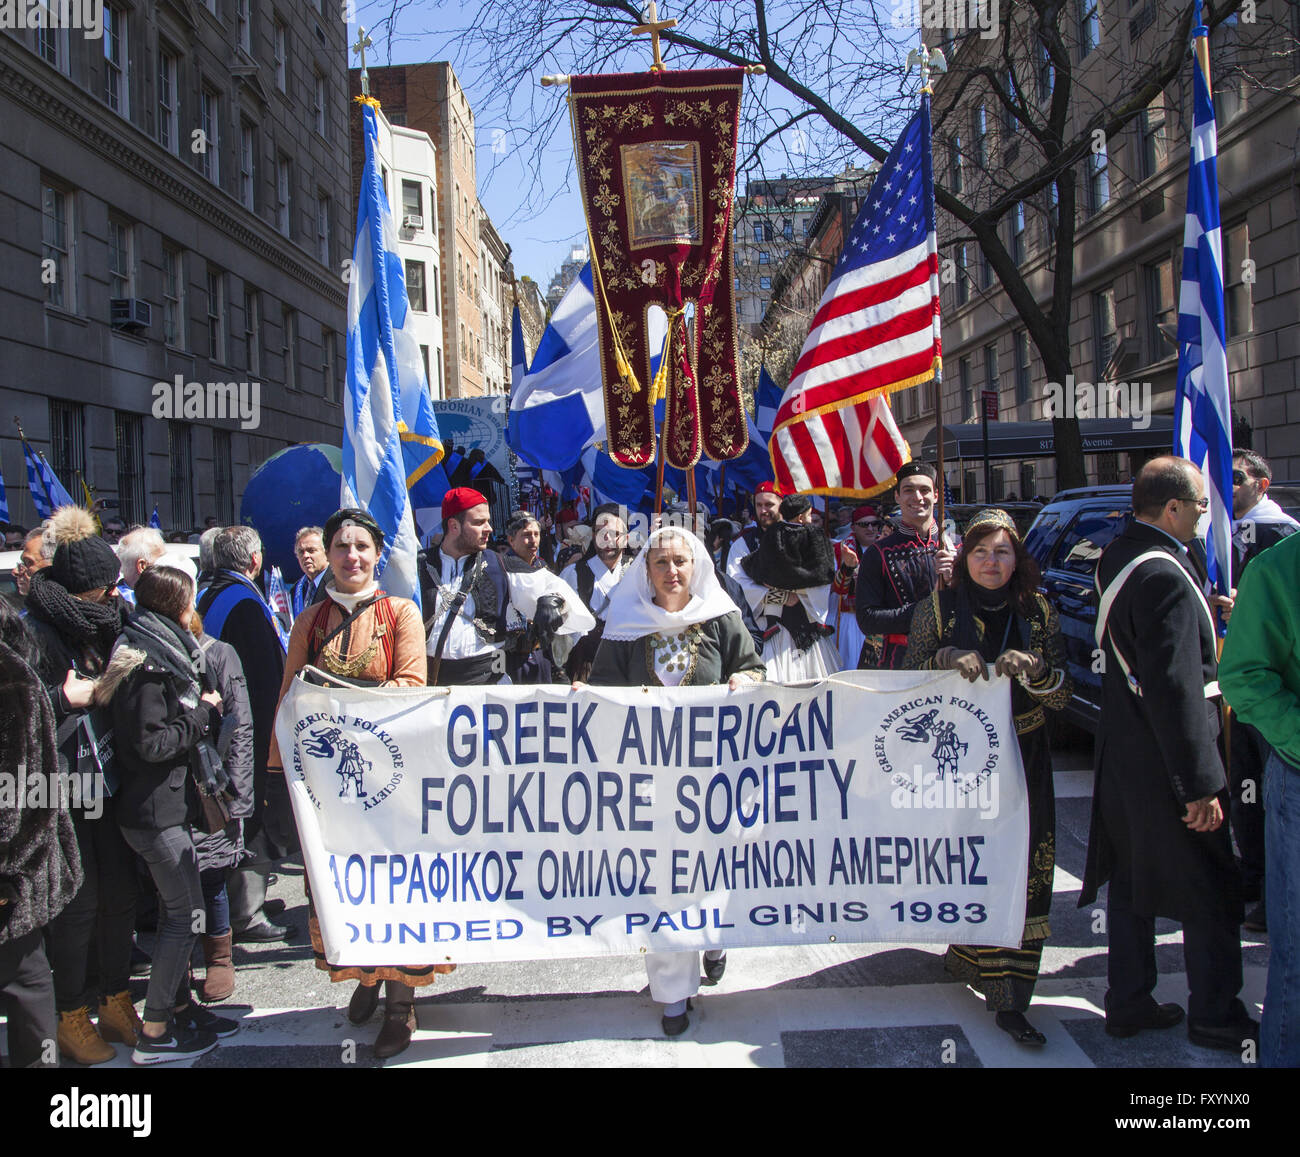 Greek Independence Day Parade, New York City. Greek American Folklore Society members march in NYC. - Stock Image